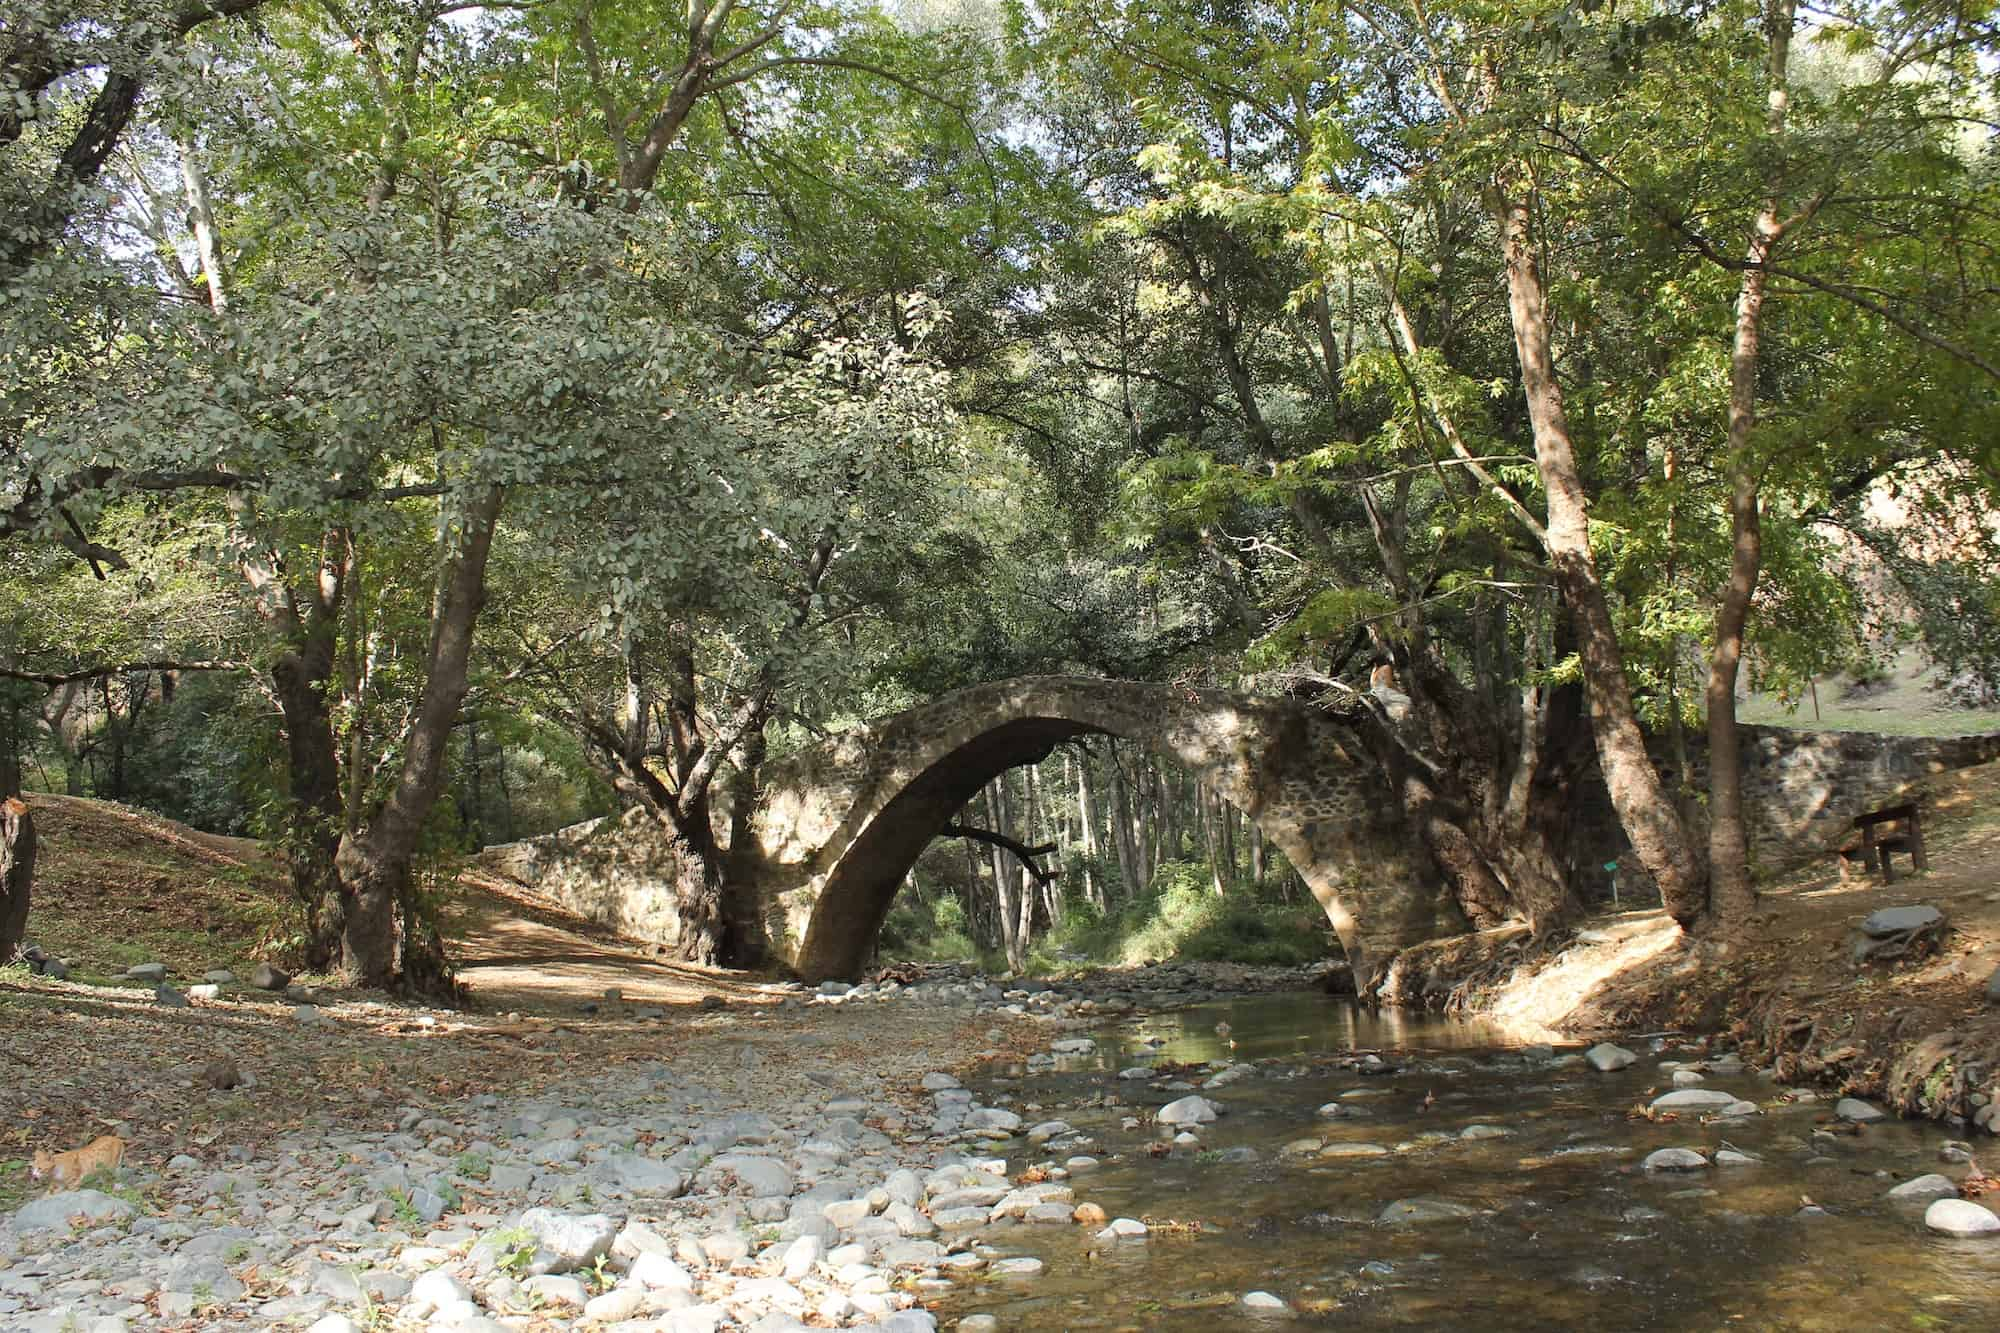 Milia Bridge Hikes in Cyprus